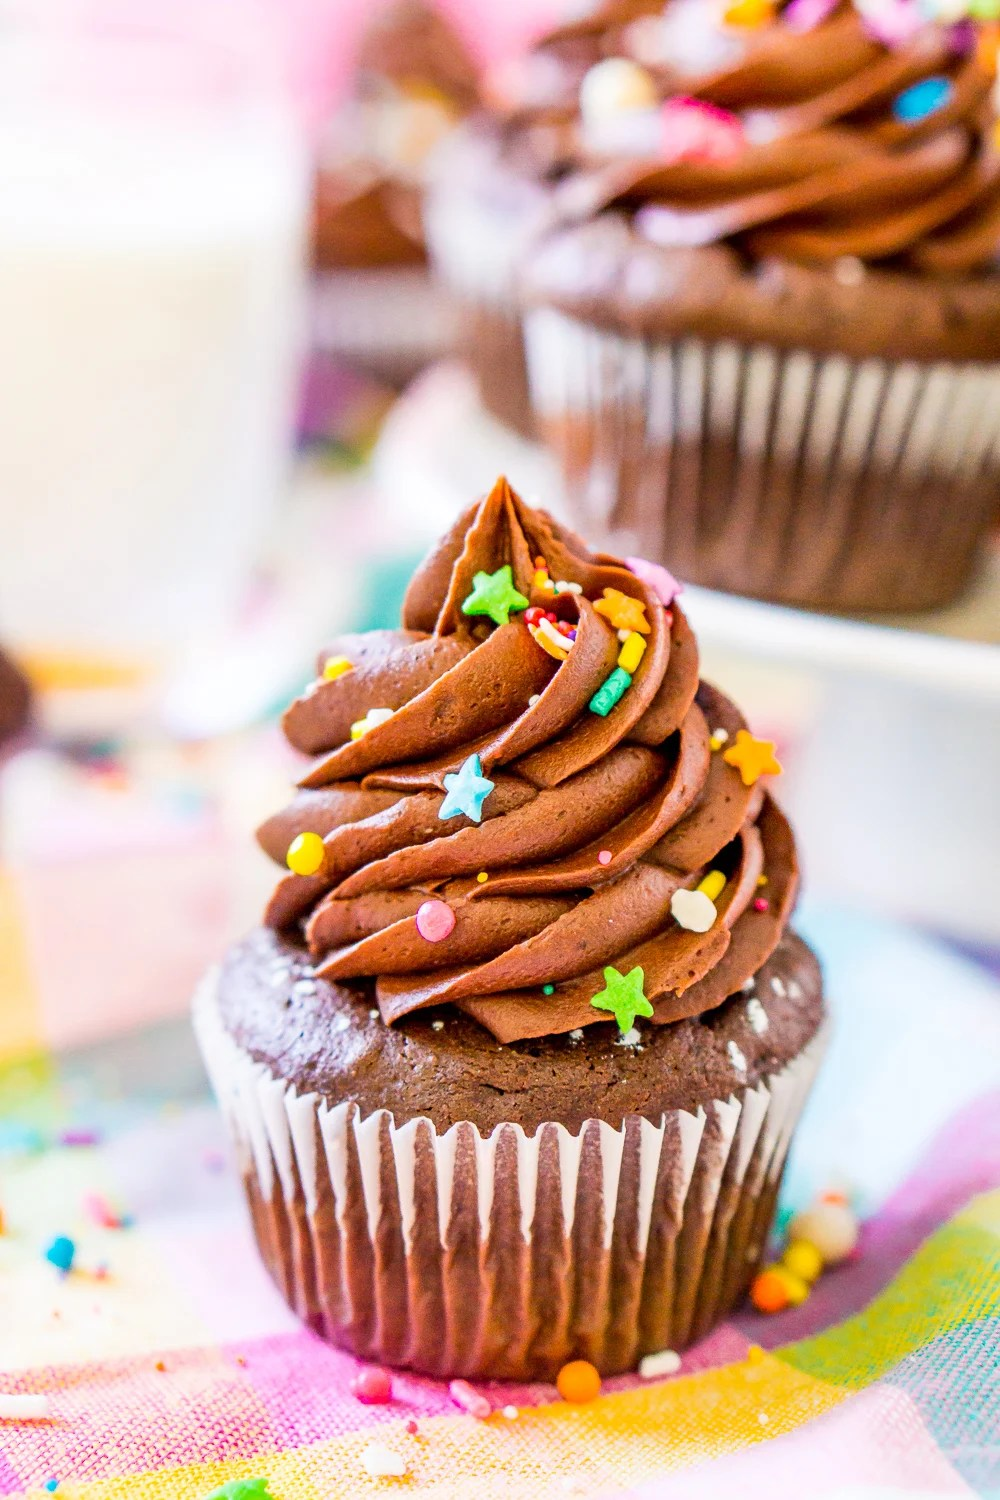 Chocolate Cupcake on colorful napkin with a white cake stand with more chocolate cupcakes in the background.